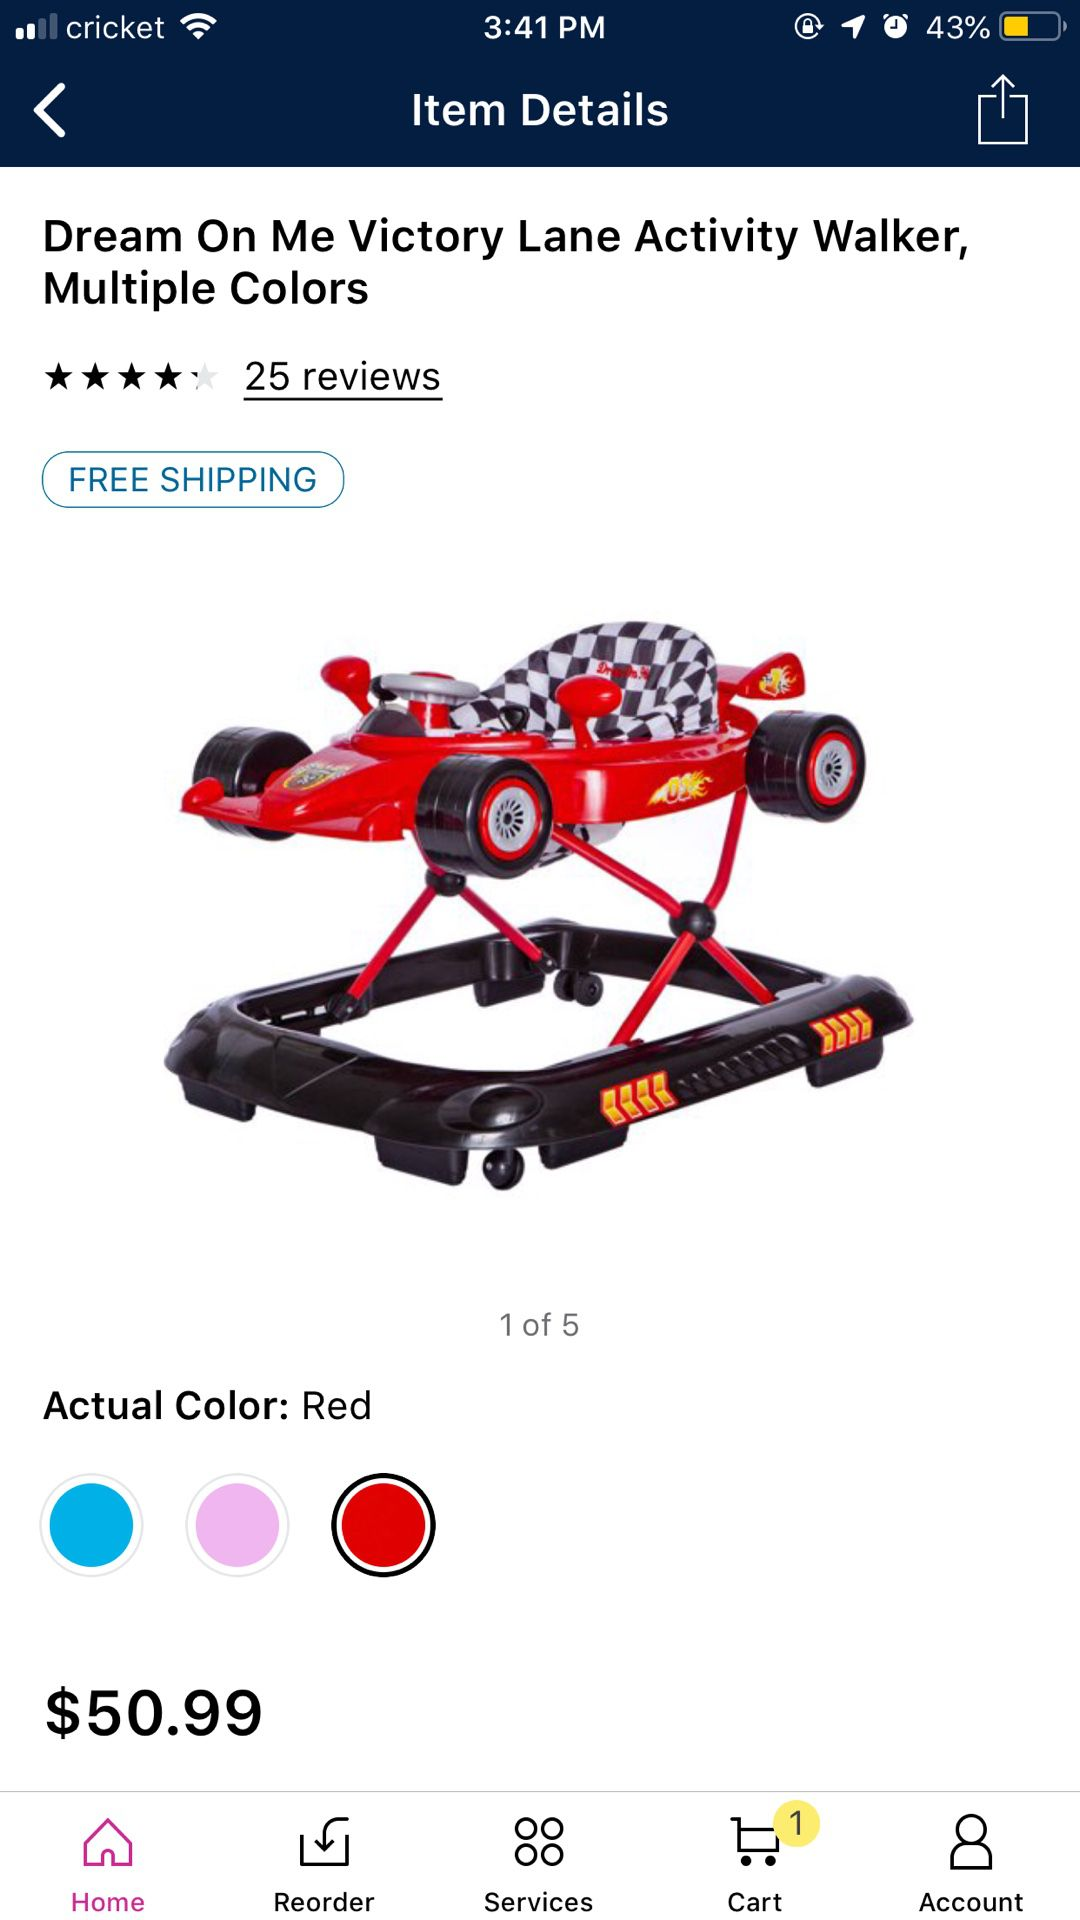 Dream on me red activity walker